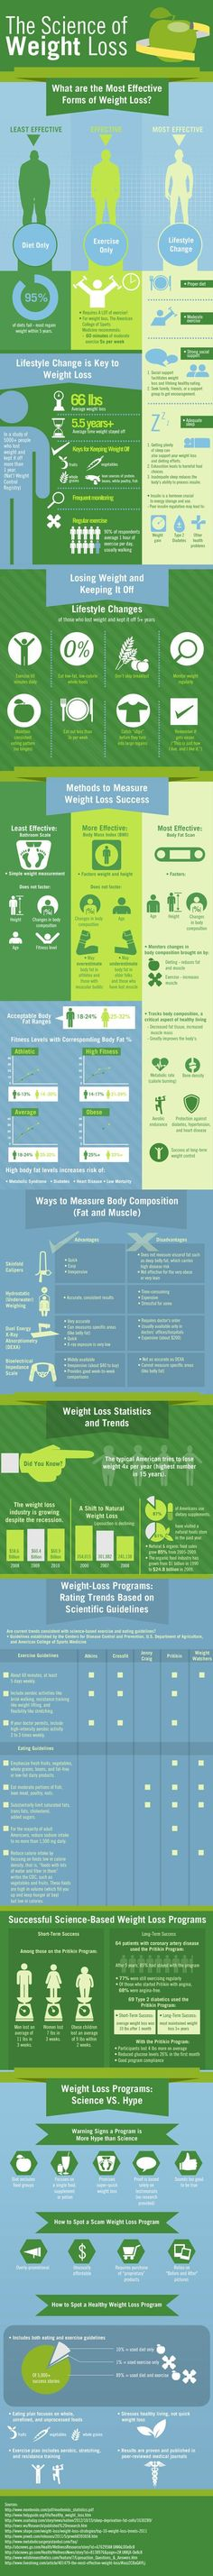 Have questions about weight loss? Wondering about the best methods? This infographic breaks it down and provides some very helpful statistics in the process...